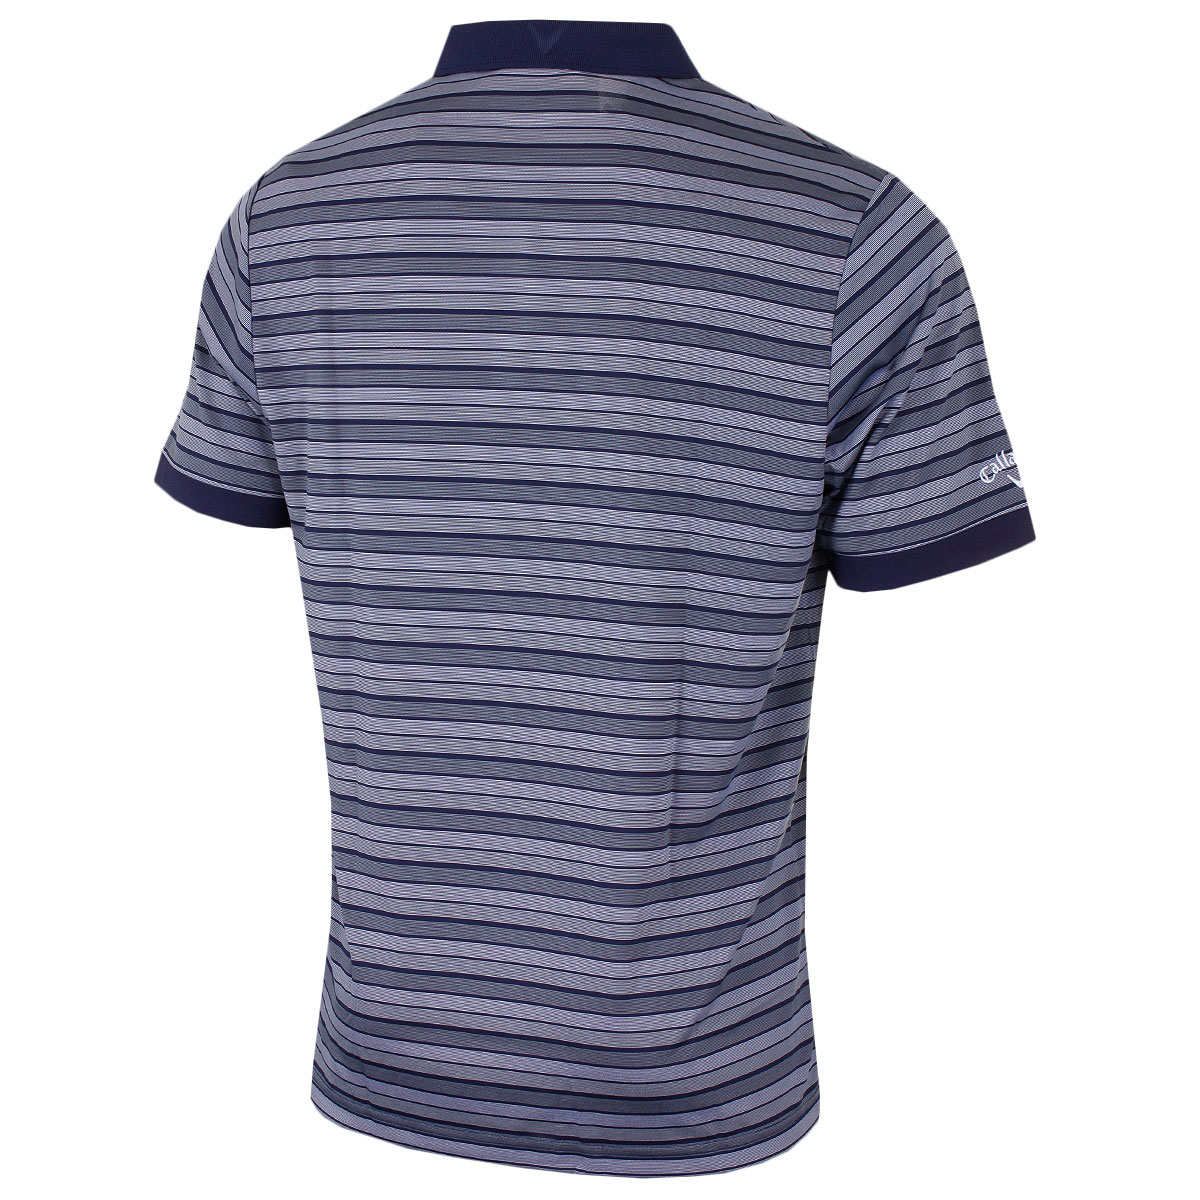 Callaway-Golf-Mens-Fine-Line-Opti-Dri-Striped-Polo-Shirt-CGKS7045-49-OFF-RRP thumbnail 7